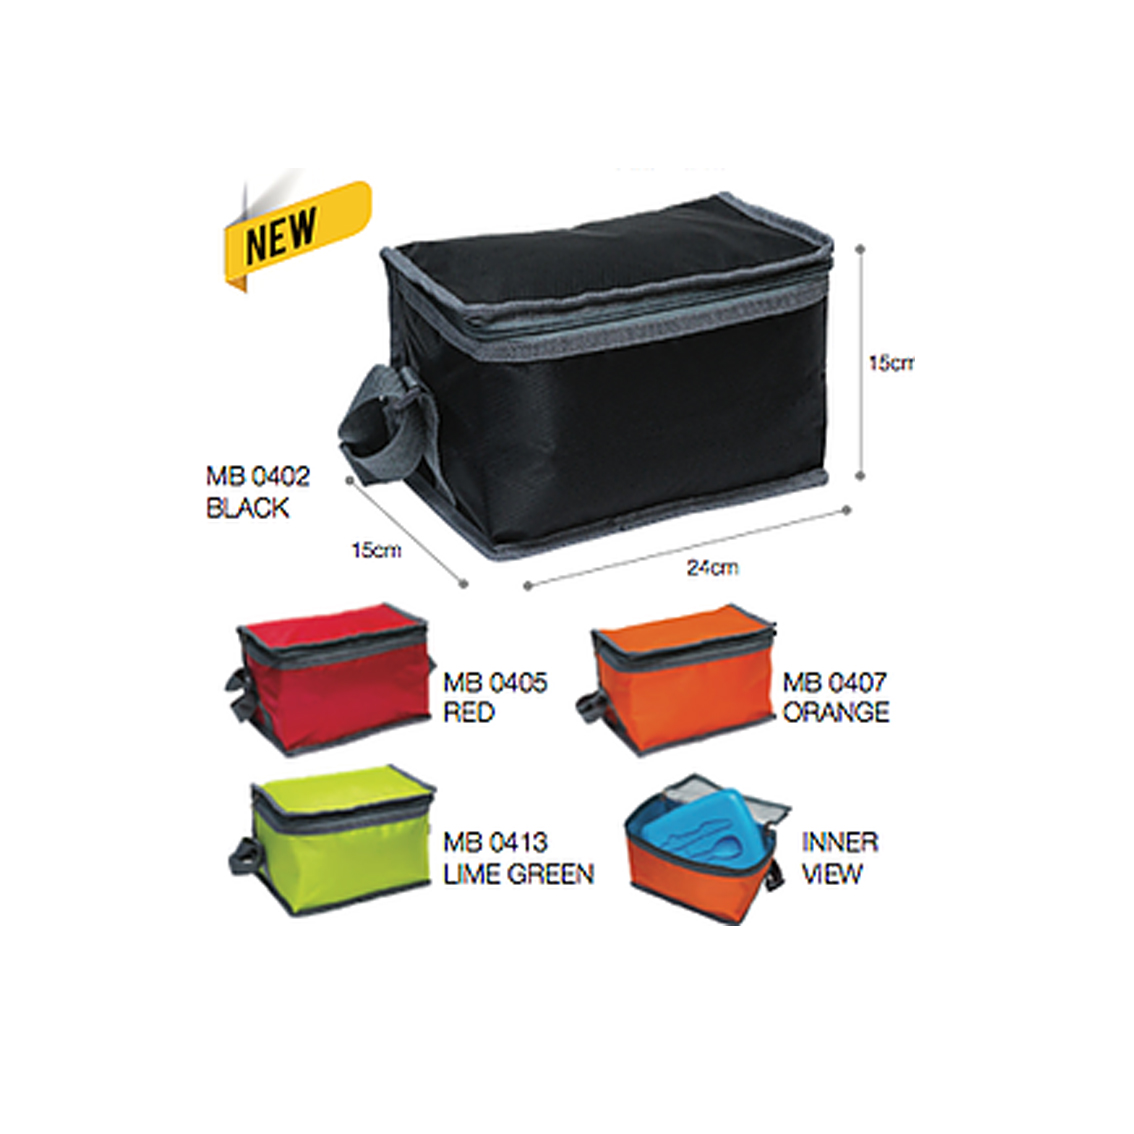 MB04 Ripstop Material (Cooler/Warmer Bag) 4